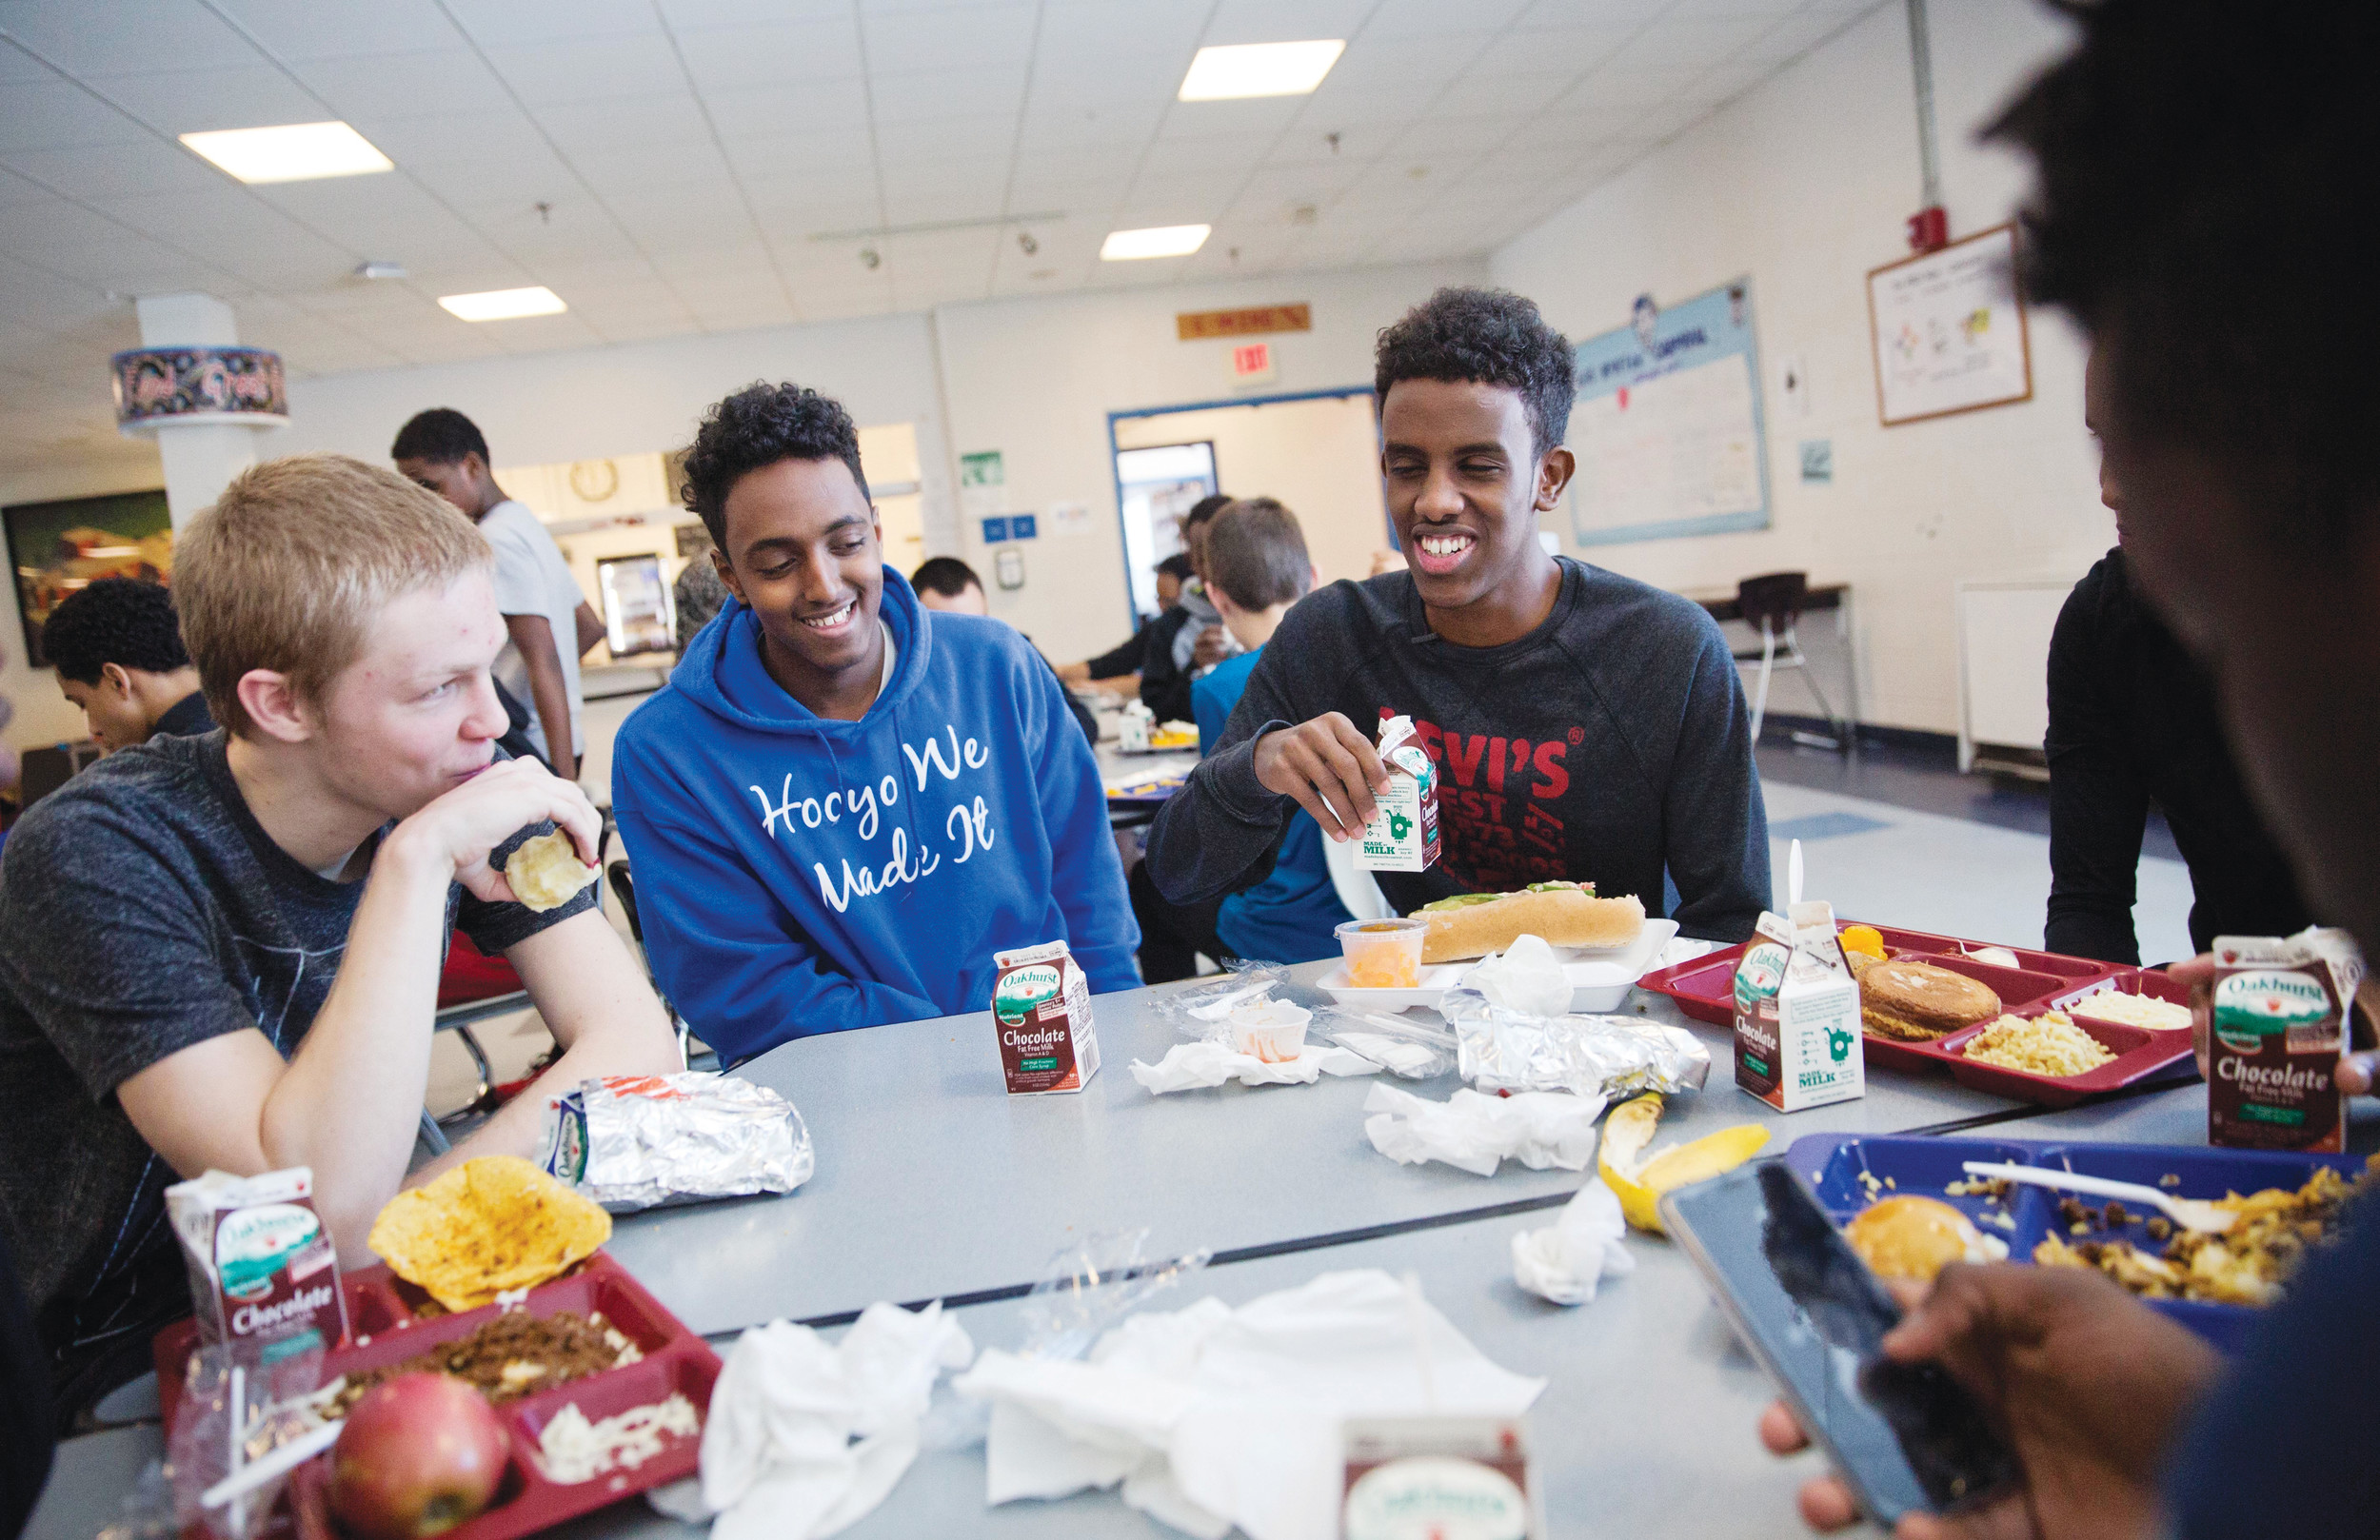 Abdiaziz Shaleh, right, a Lewiston high school senior and co-captain of the soccer team, and Essa Gedi, center, both of whose families emigrated from Somalia, sit with classmate Isiah Leach, left, during lunch in the school's cafeteria in Lewiston, Maine, in March. Two years ago, immigrant children led the high school soccer team to win the state championship, a moment heralded as a triumph for the city's embrace of its immigrant community.